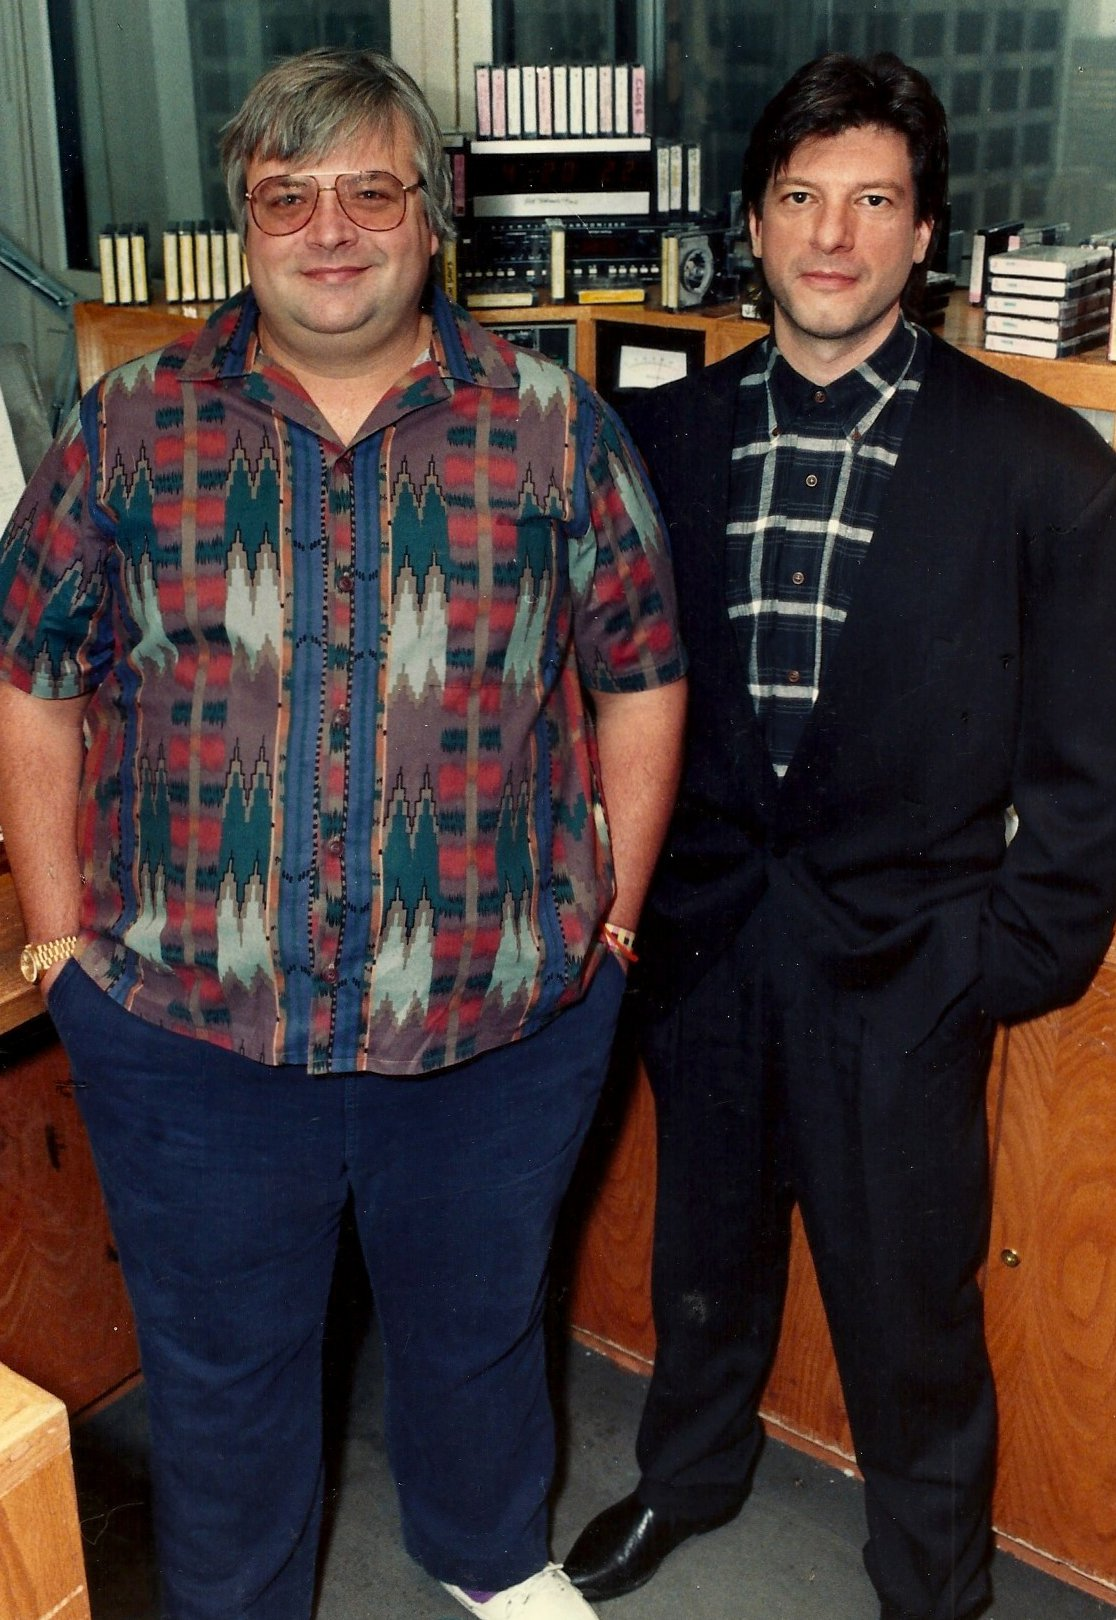 Steve Dahl and Garry Meier